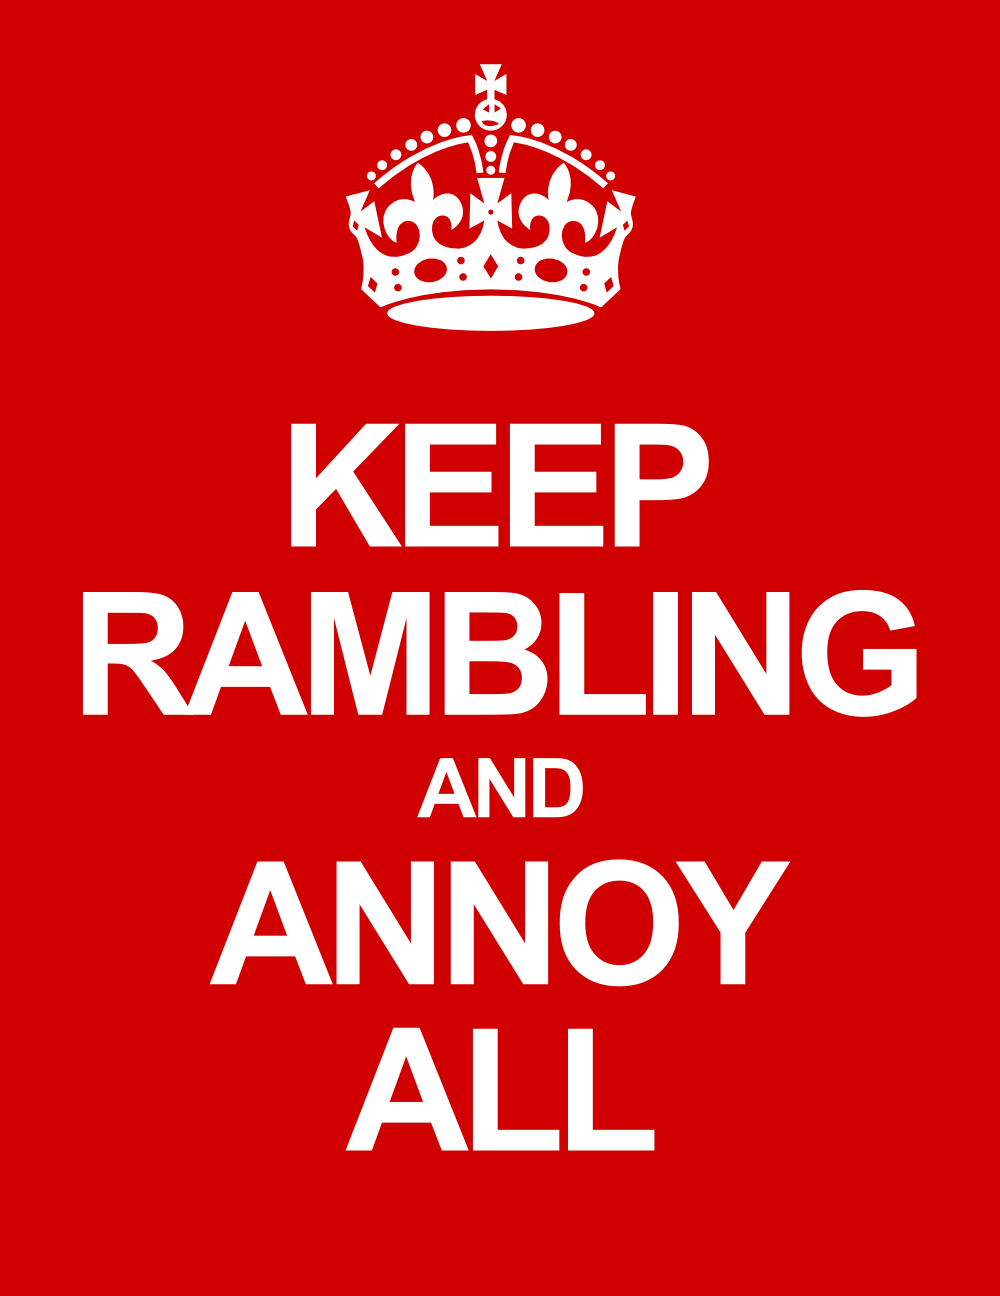 How to Stop Rambling Poster: Keep Rambling and Annoy All